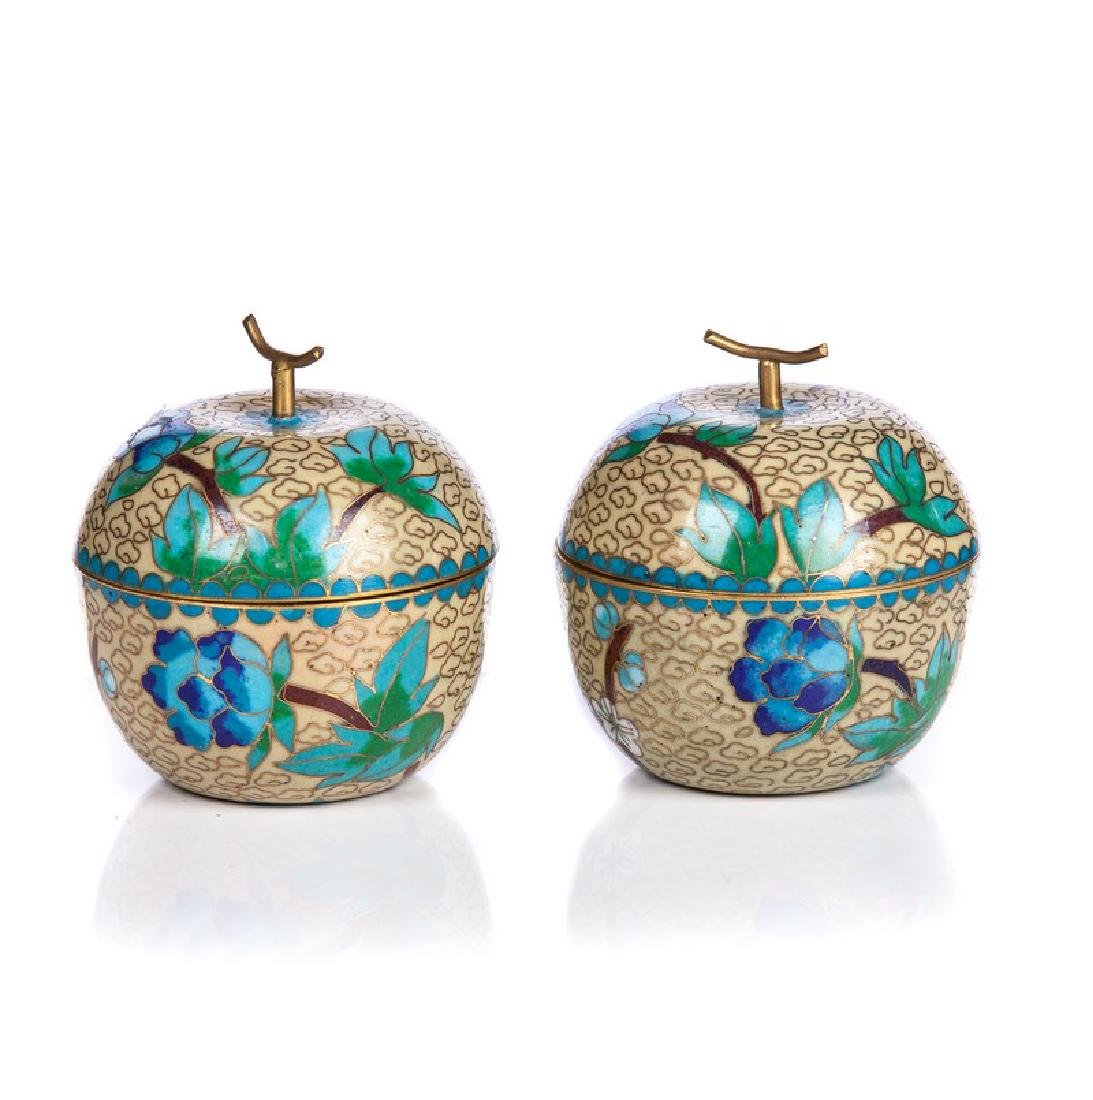 PAIR OF CHINESE CLOISONNE COVERED APPLE BOXES - 3